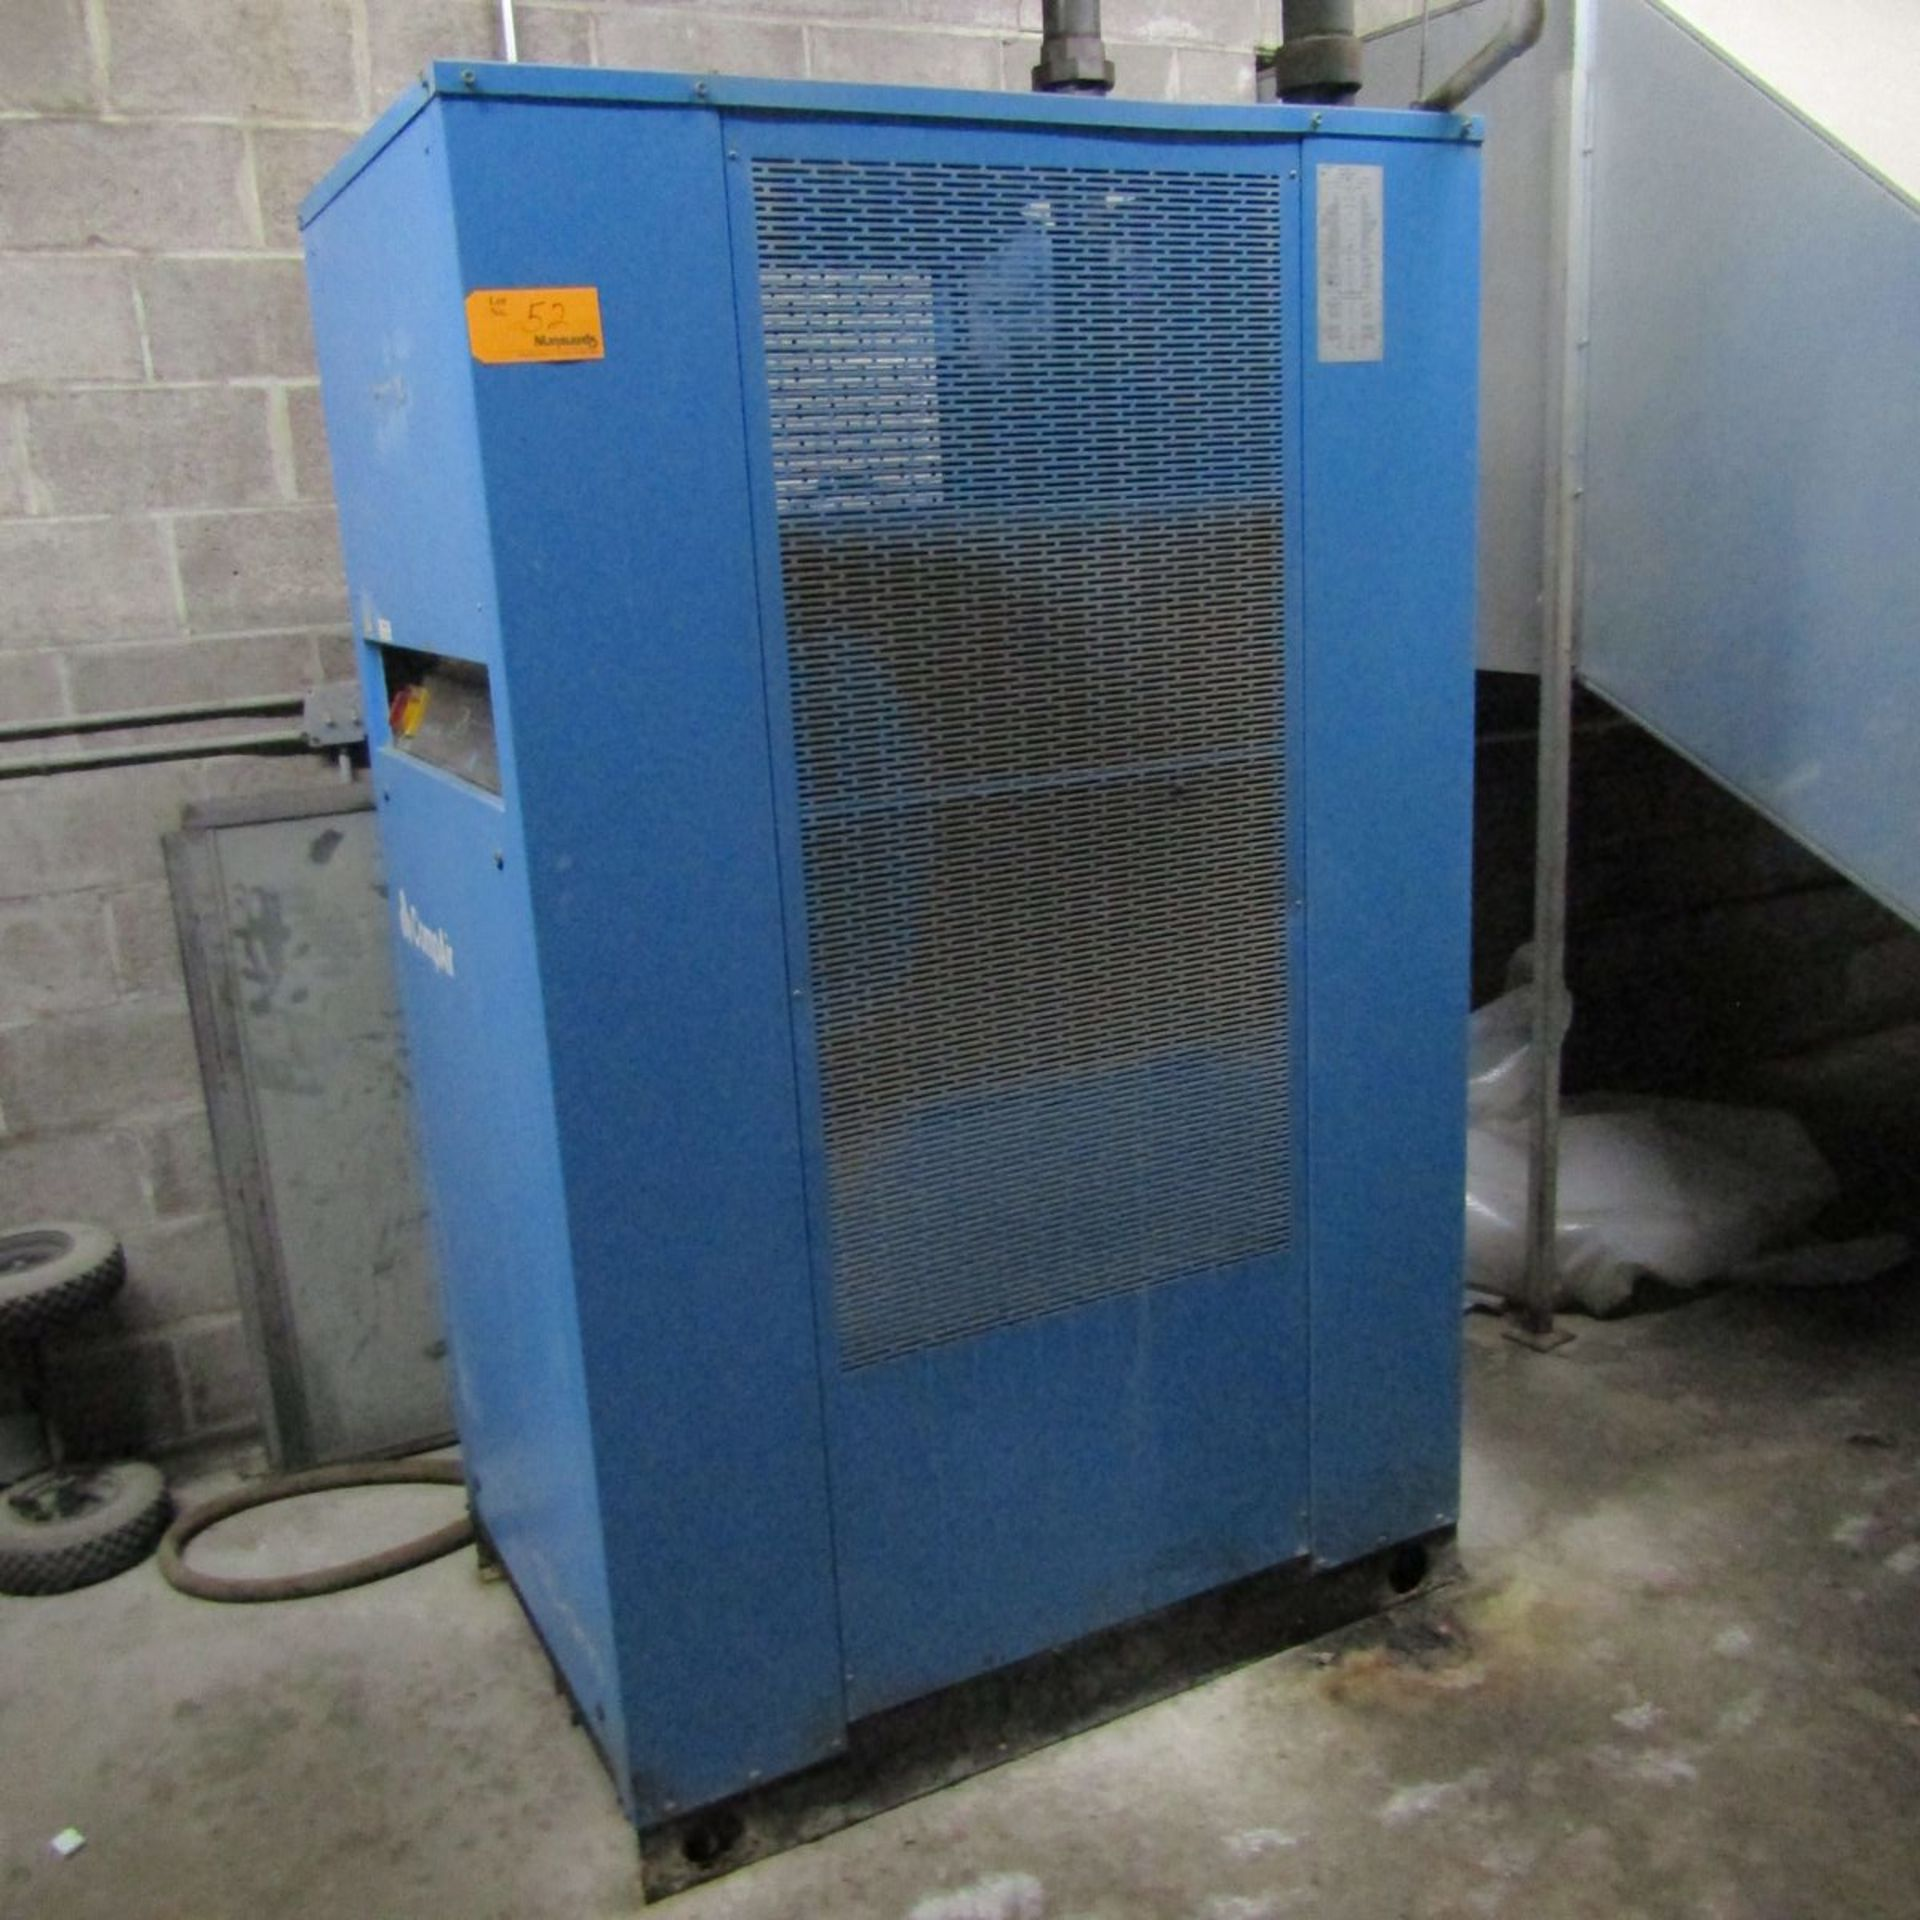 Lot 52 - 2002 Comp Air CTD 800 Air Dryer